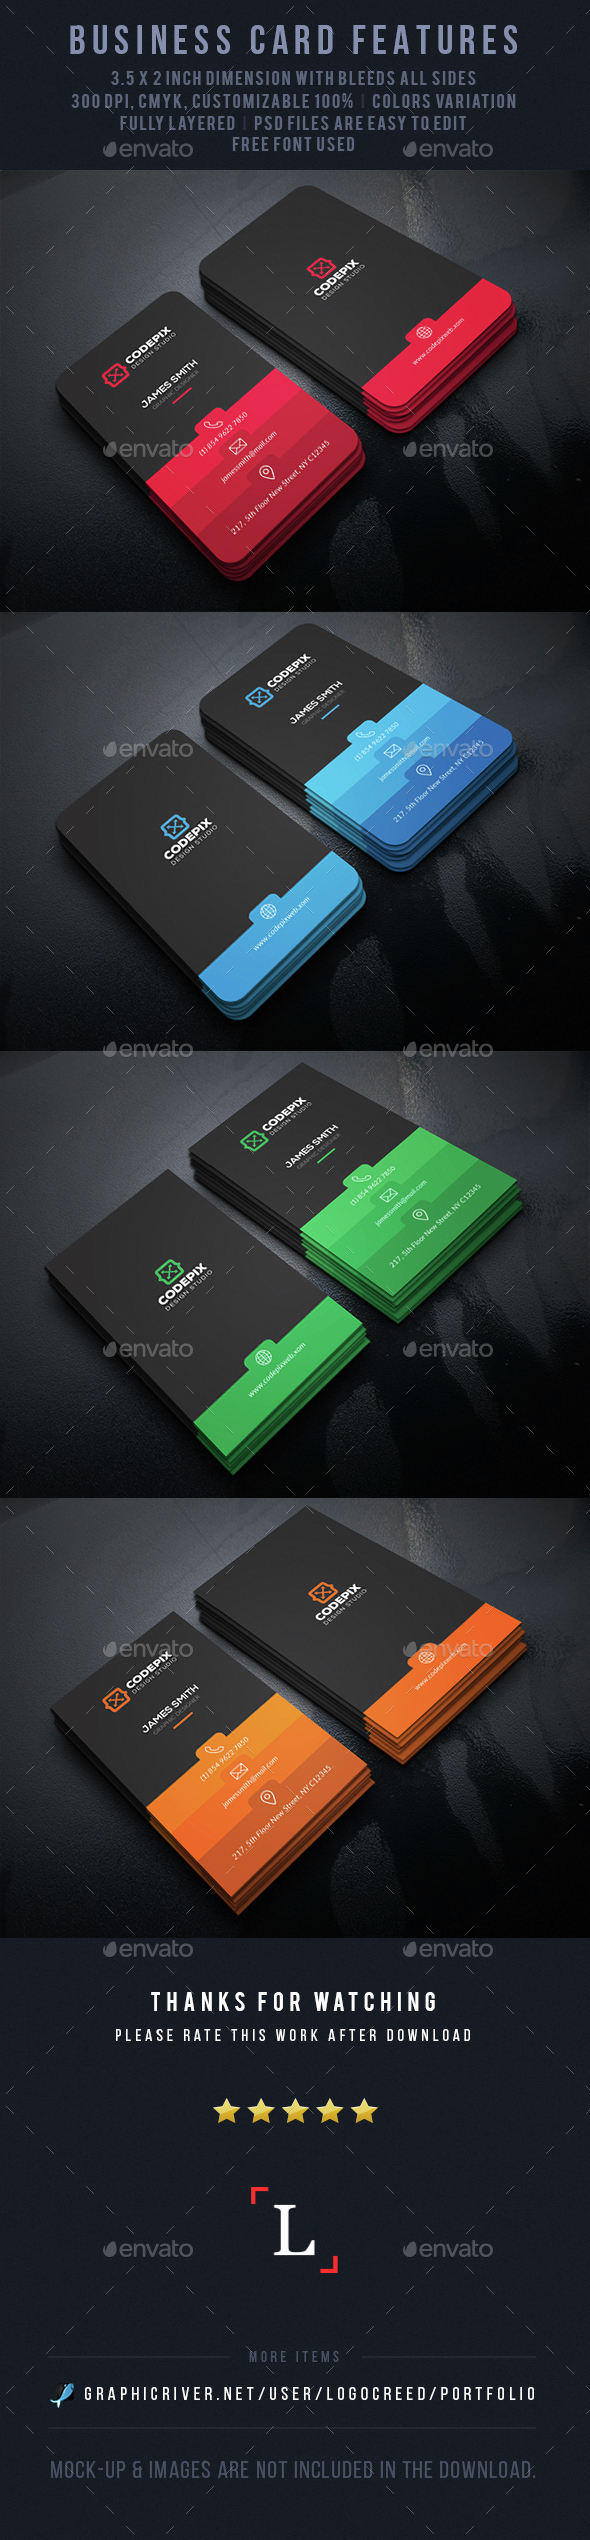 Color Shade Business Card V.2 - Business Cards Print Templates